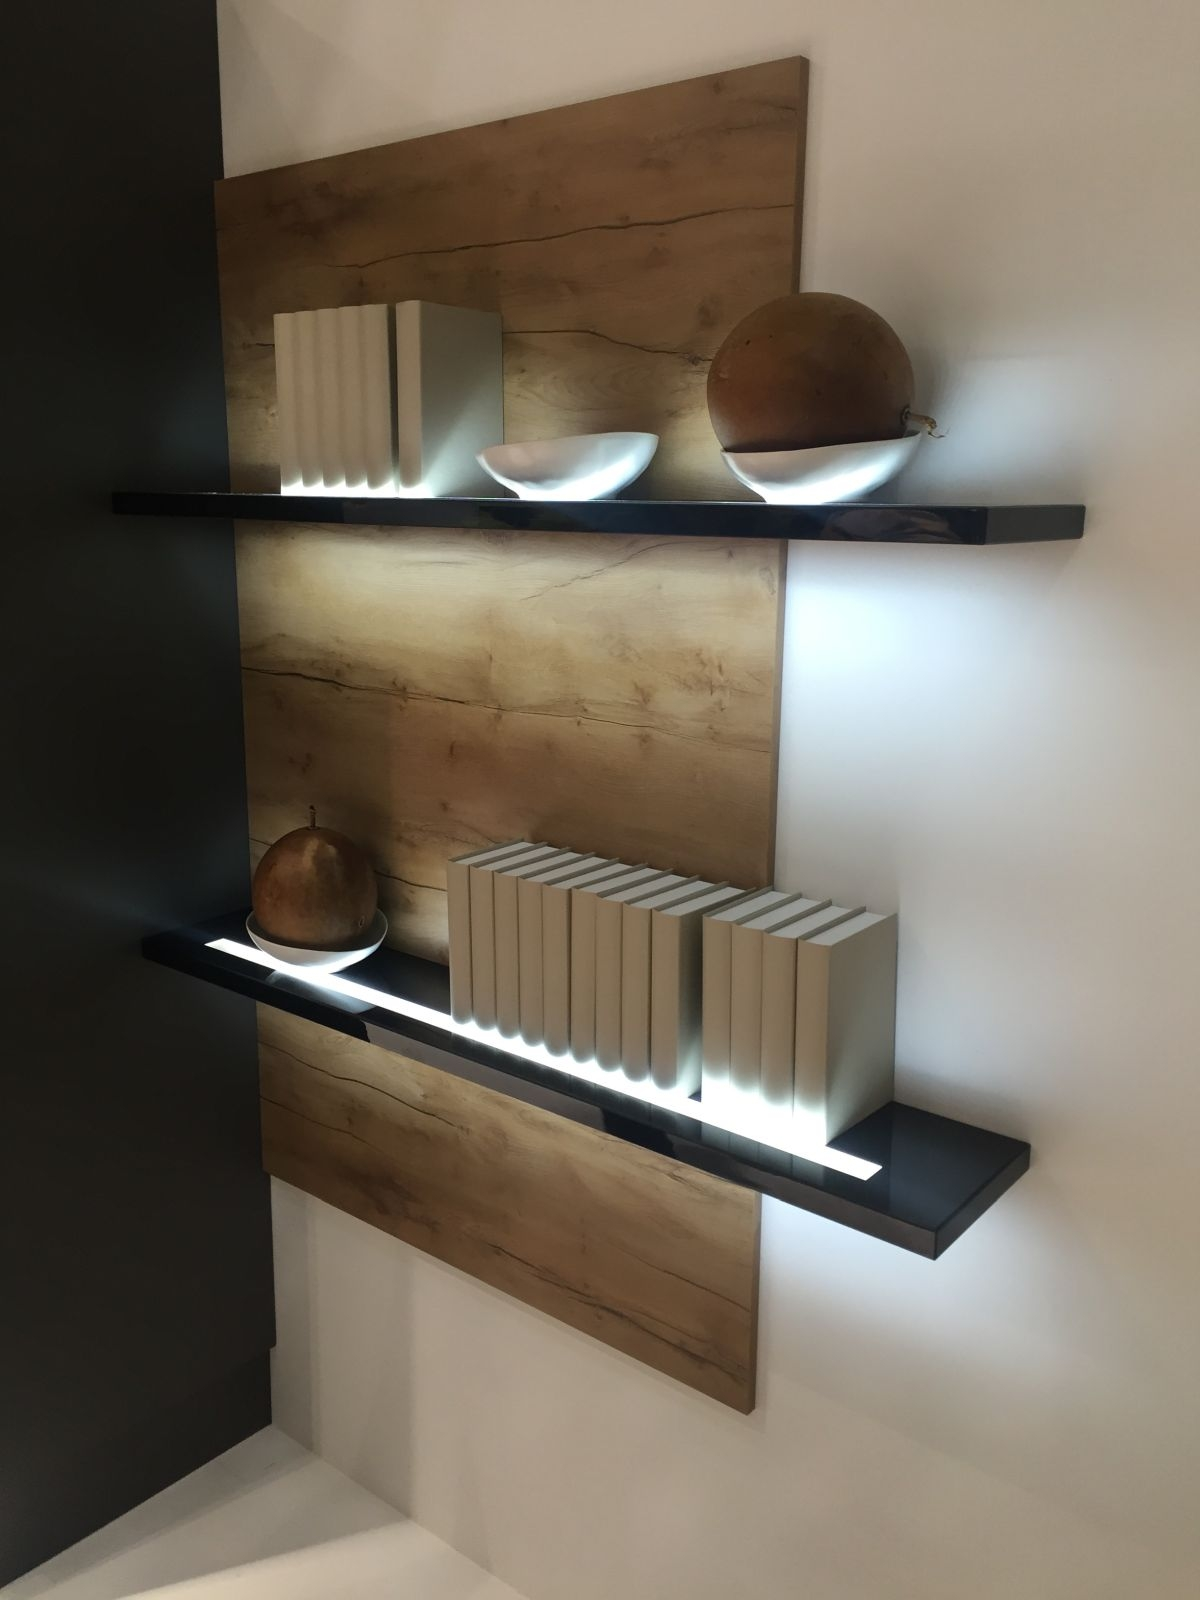 Floating Shelves With Lights Roselawnlutheran Throughout Led Floating Shelves (View 8 of 15)